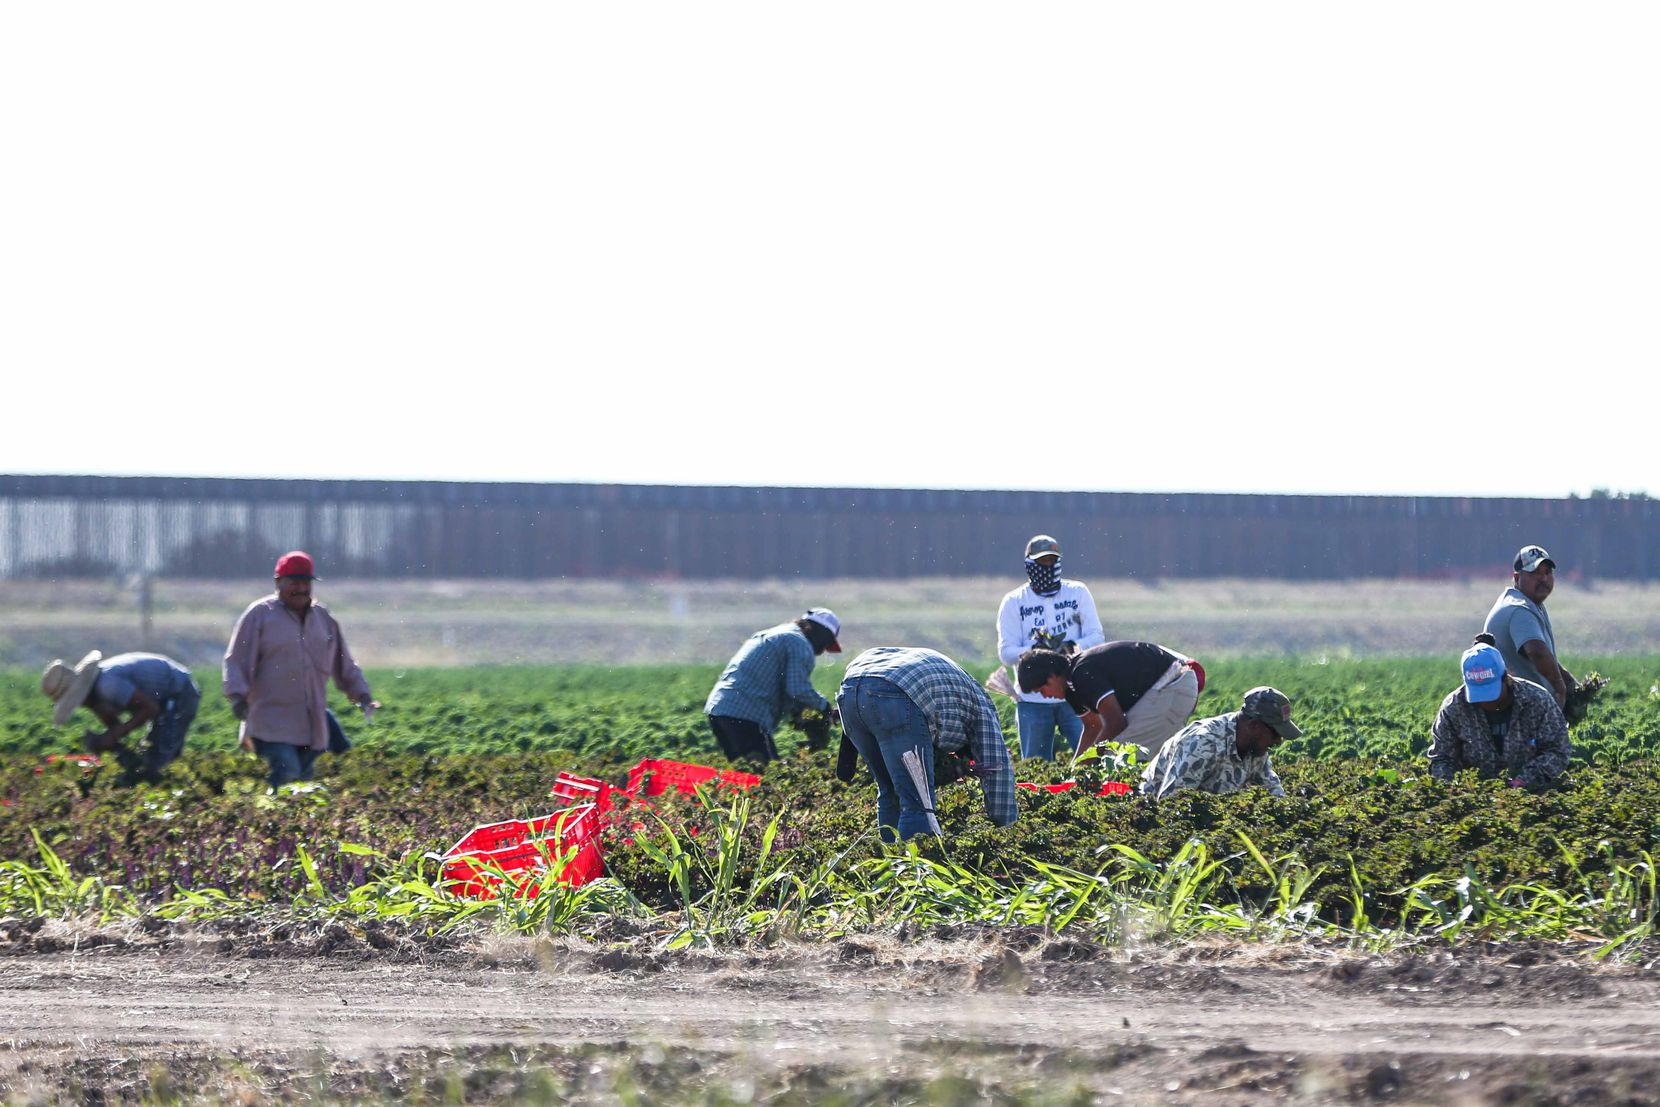 Workers harvesting the land while a new section of the wall is being built in Pharr, Texas on Wednesday, January 13, 2021. (Lola Gomez/The Dallas Morning News)